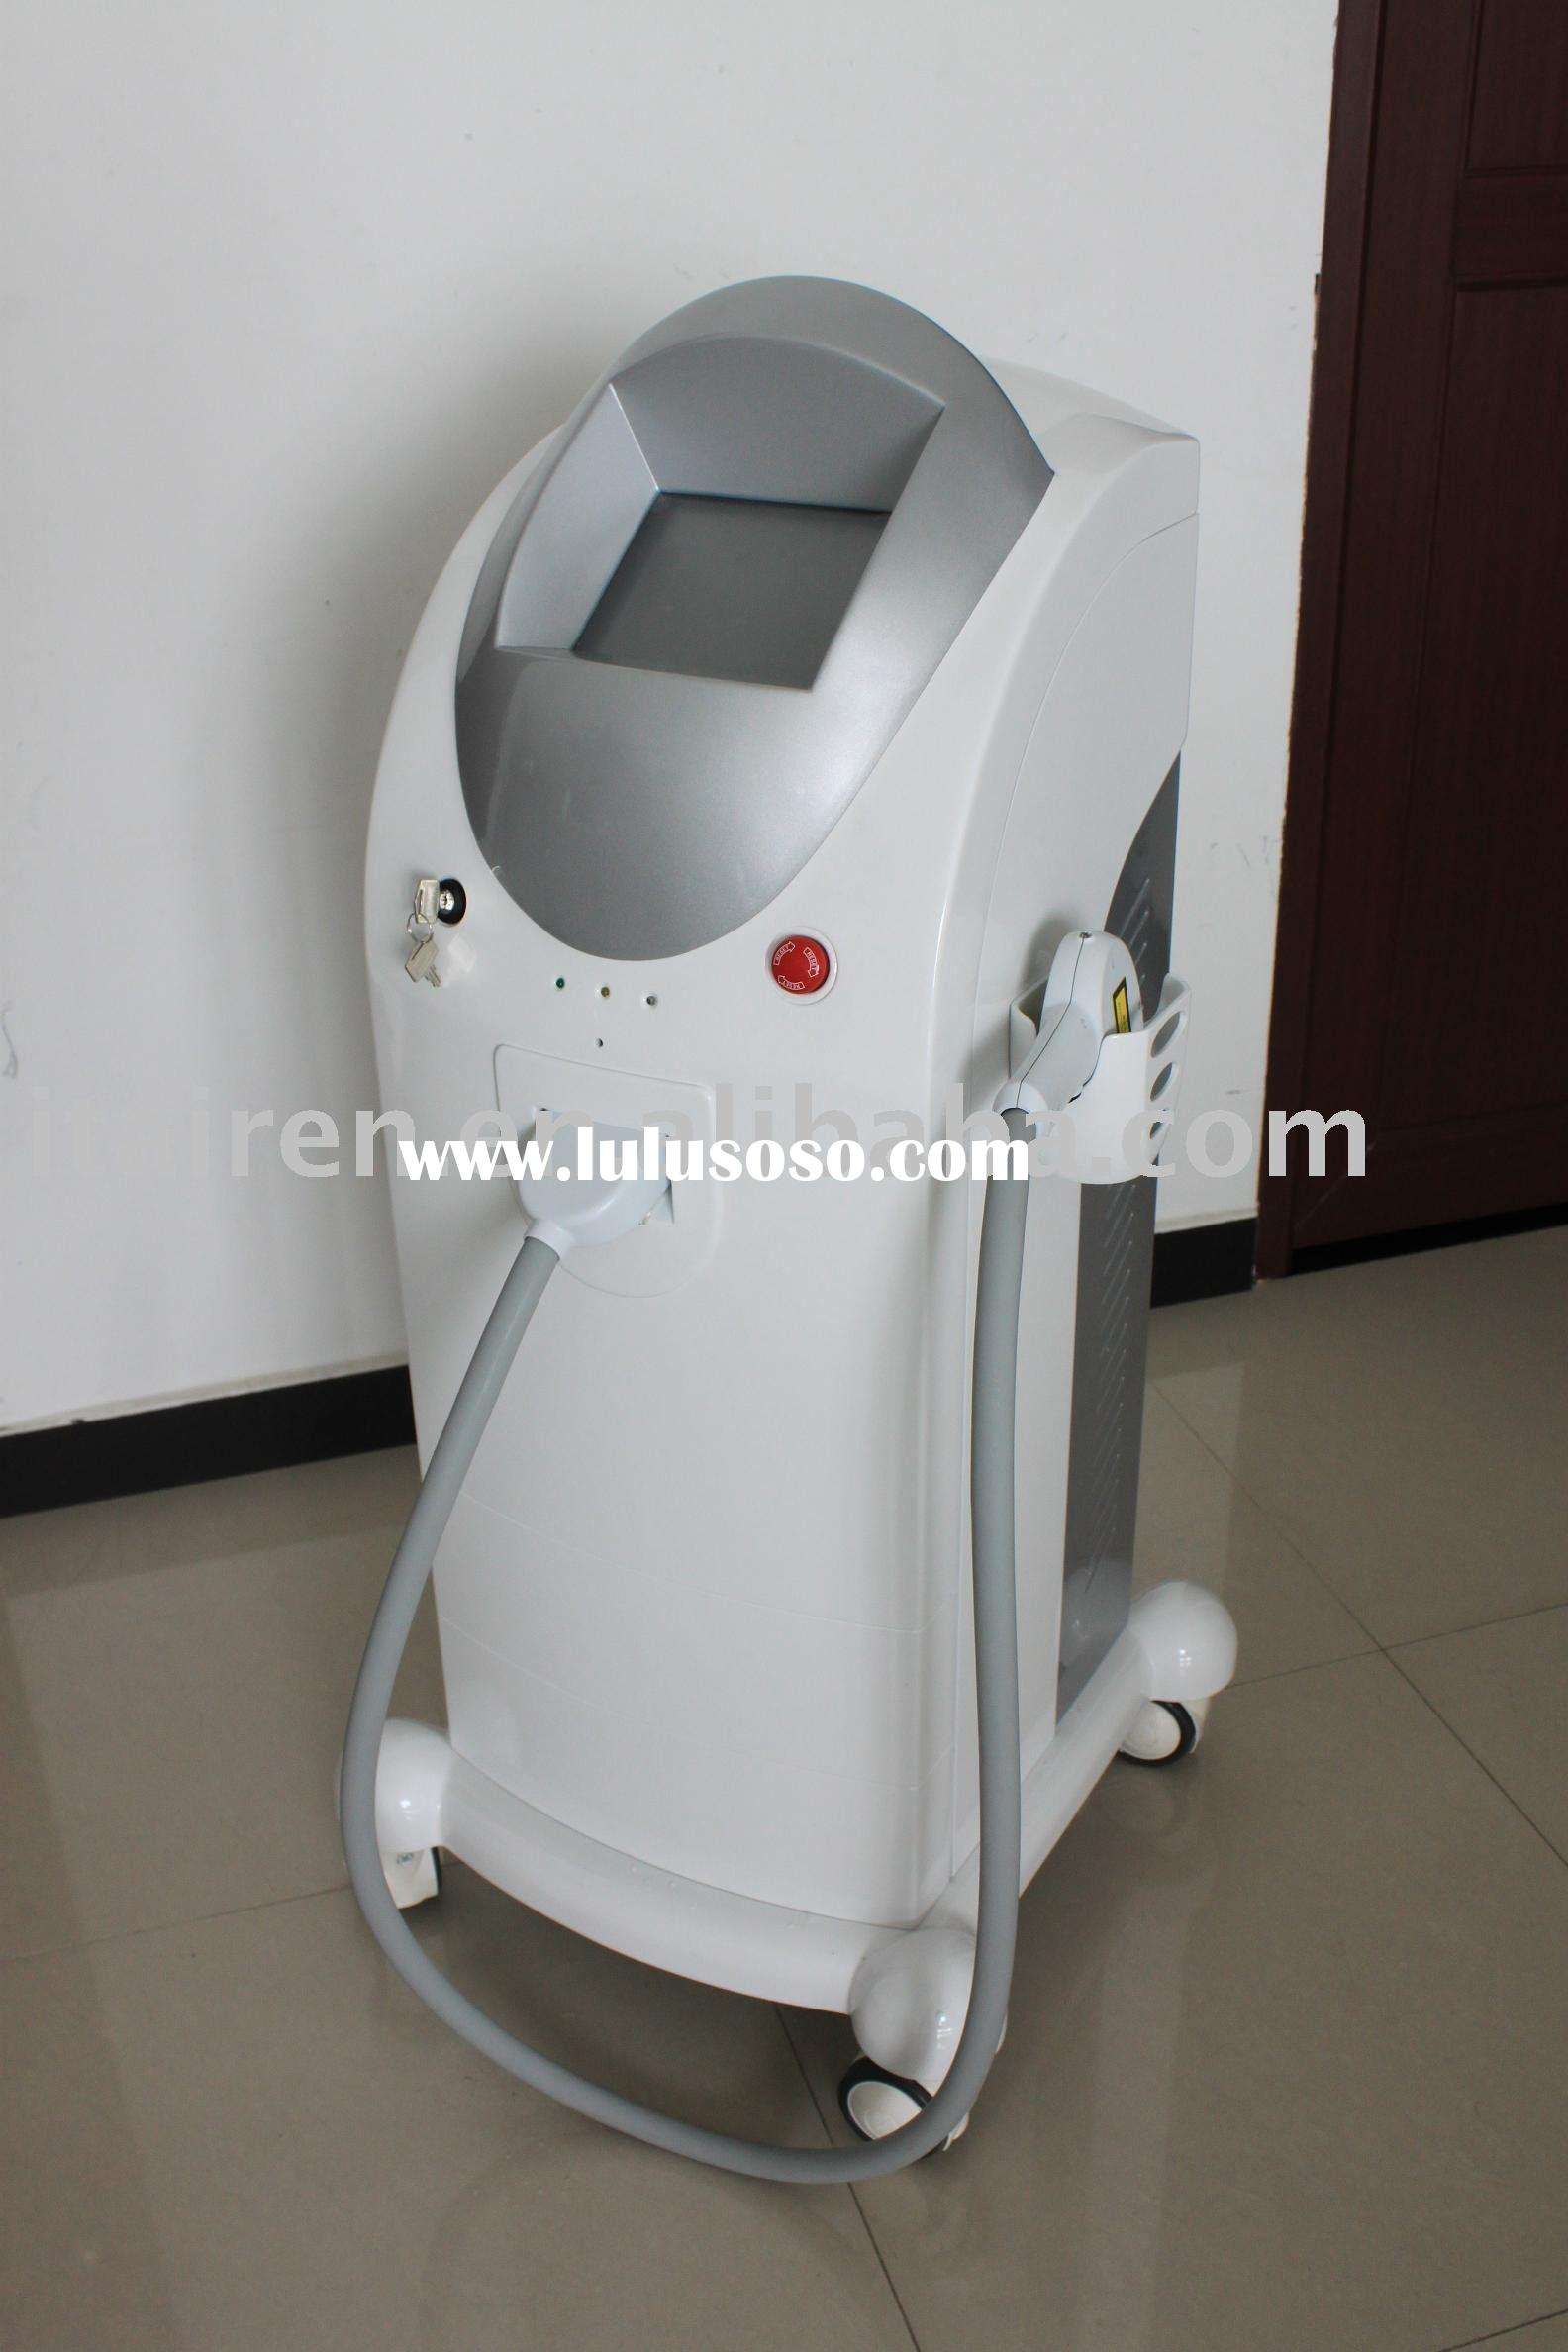 New Diode Laser Hair Removal System